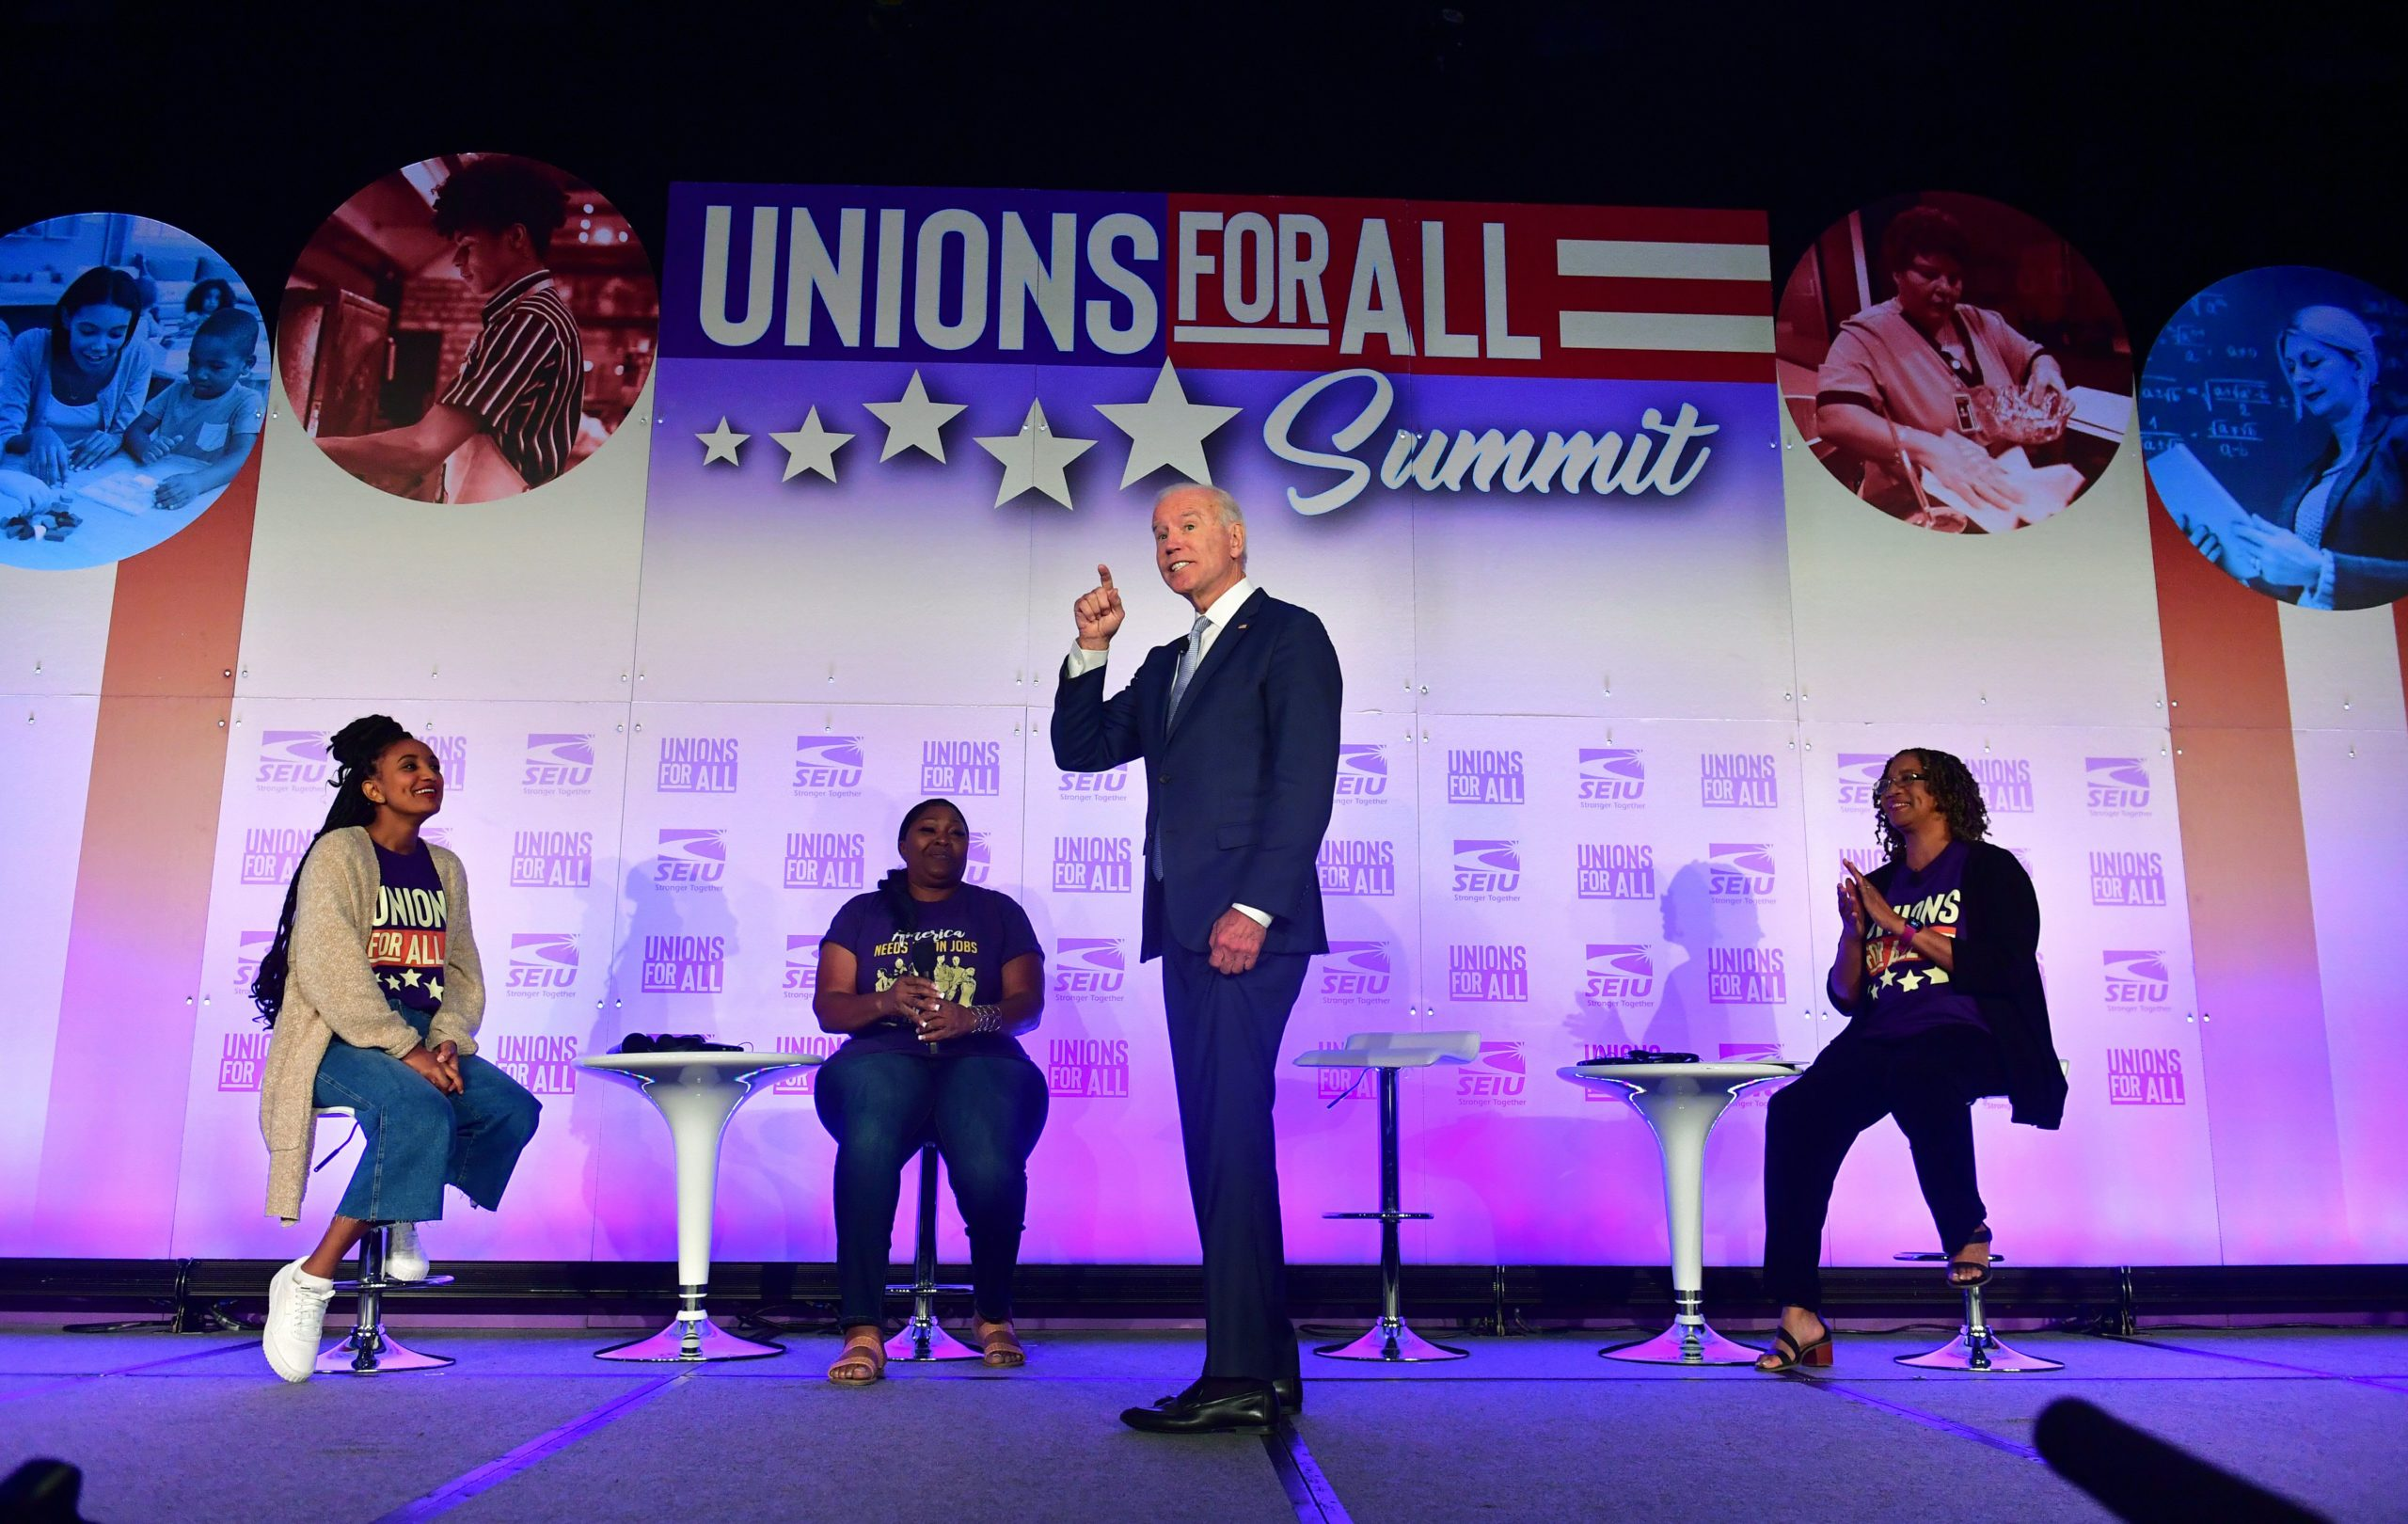 President Joe Biden speaks during the SEIU Unions for All Summit in Los Angeles, California on Oct 4, 2019. (Frederic J. Brown/AFP via Getty Images)